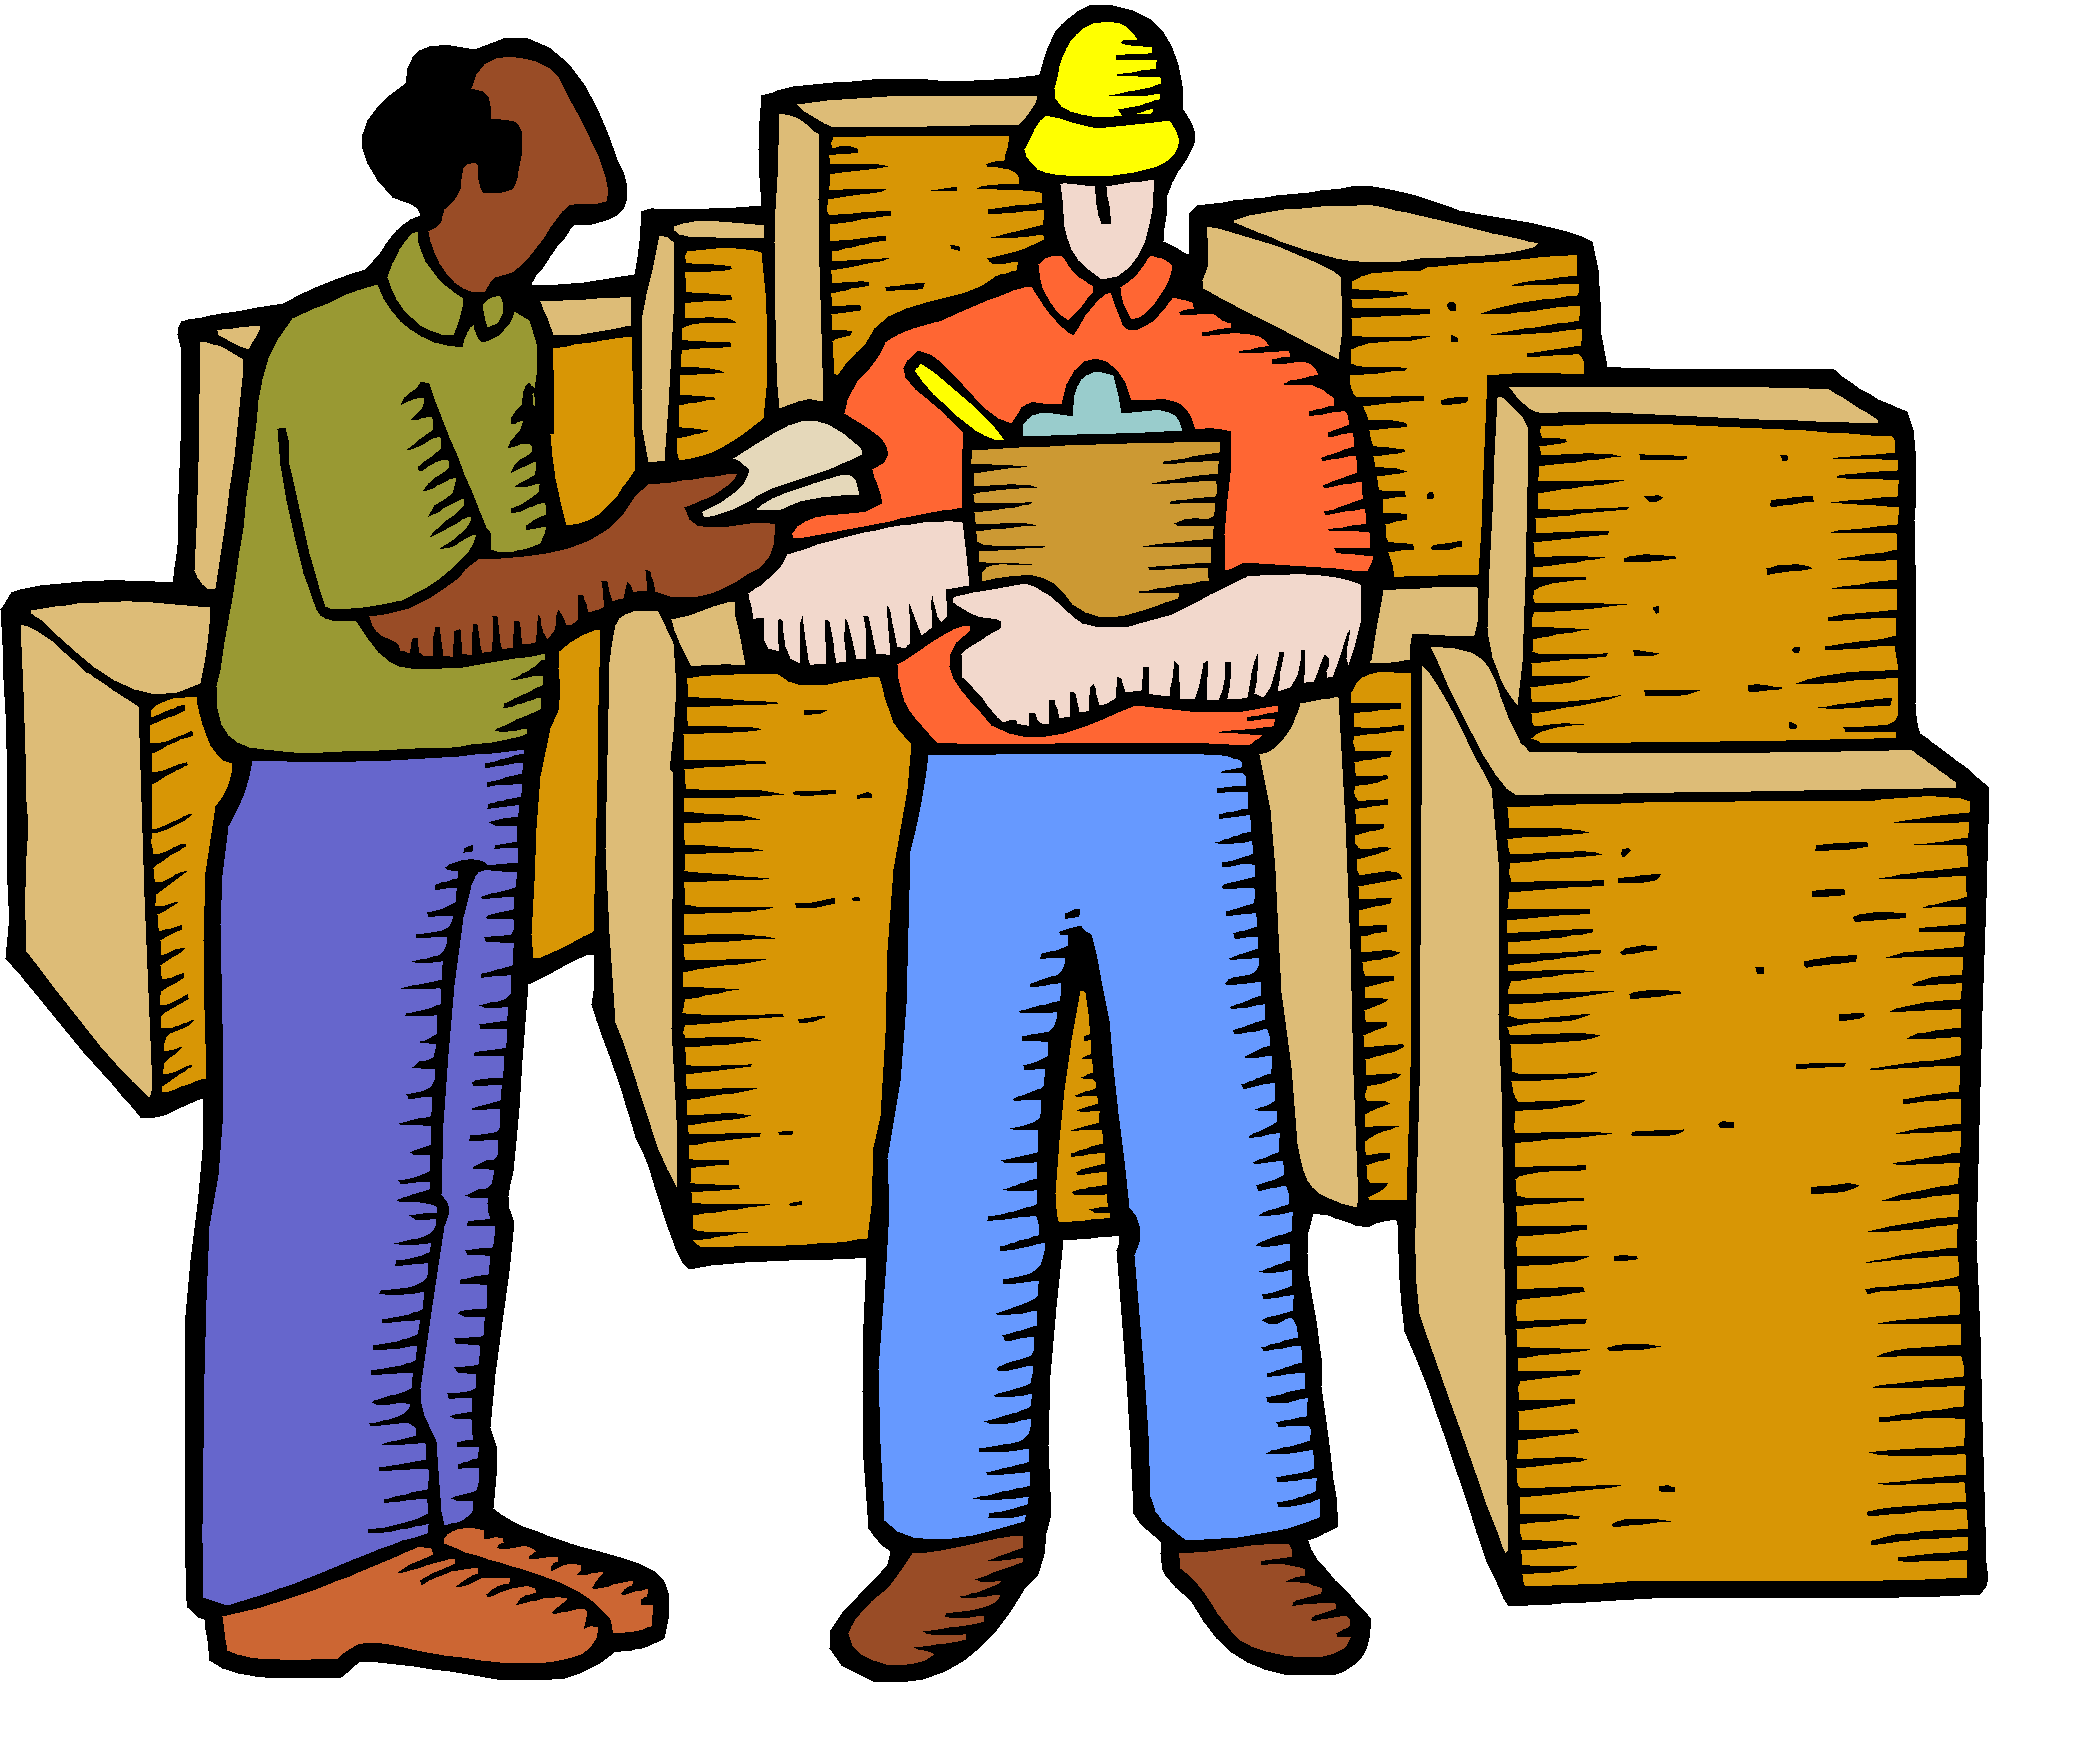 Clipart box distributor. Collection of free distributed